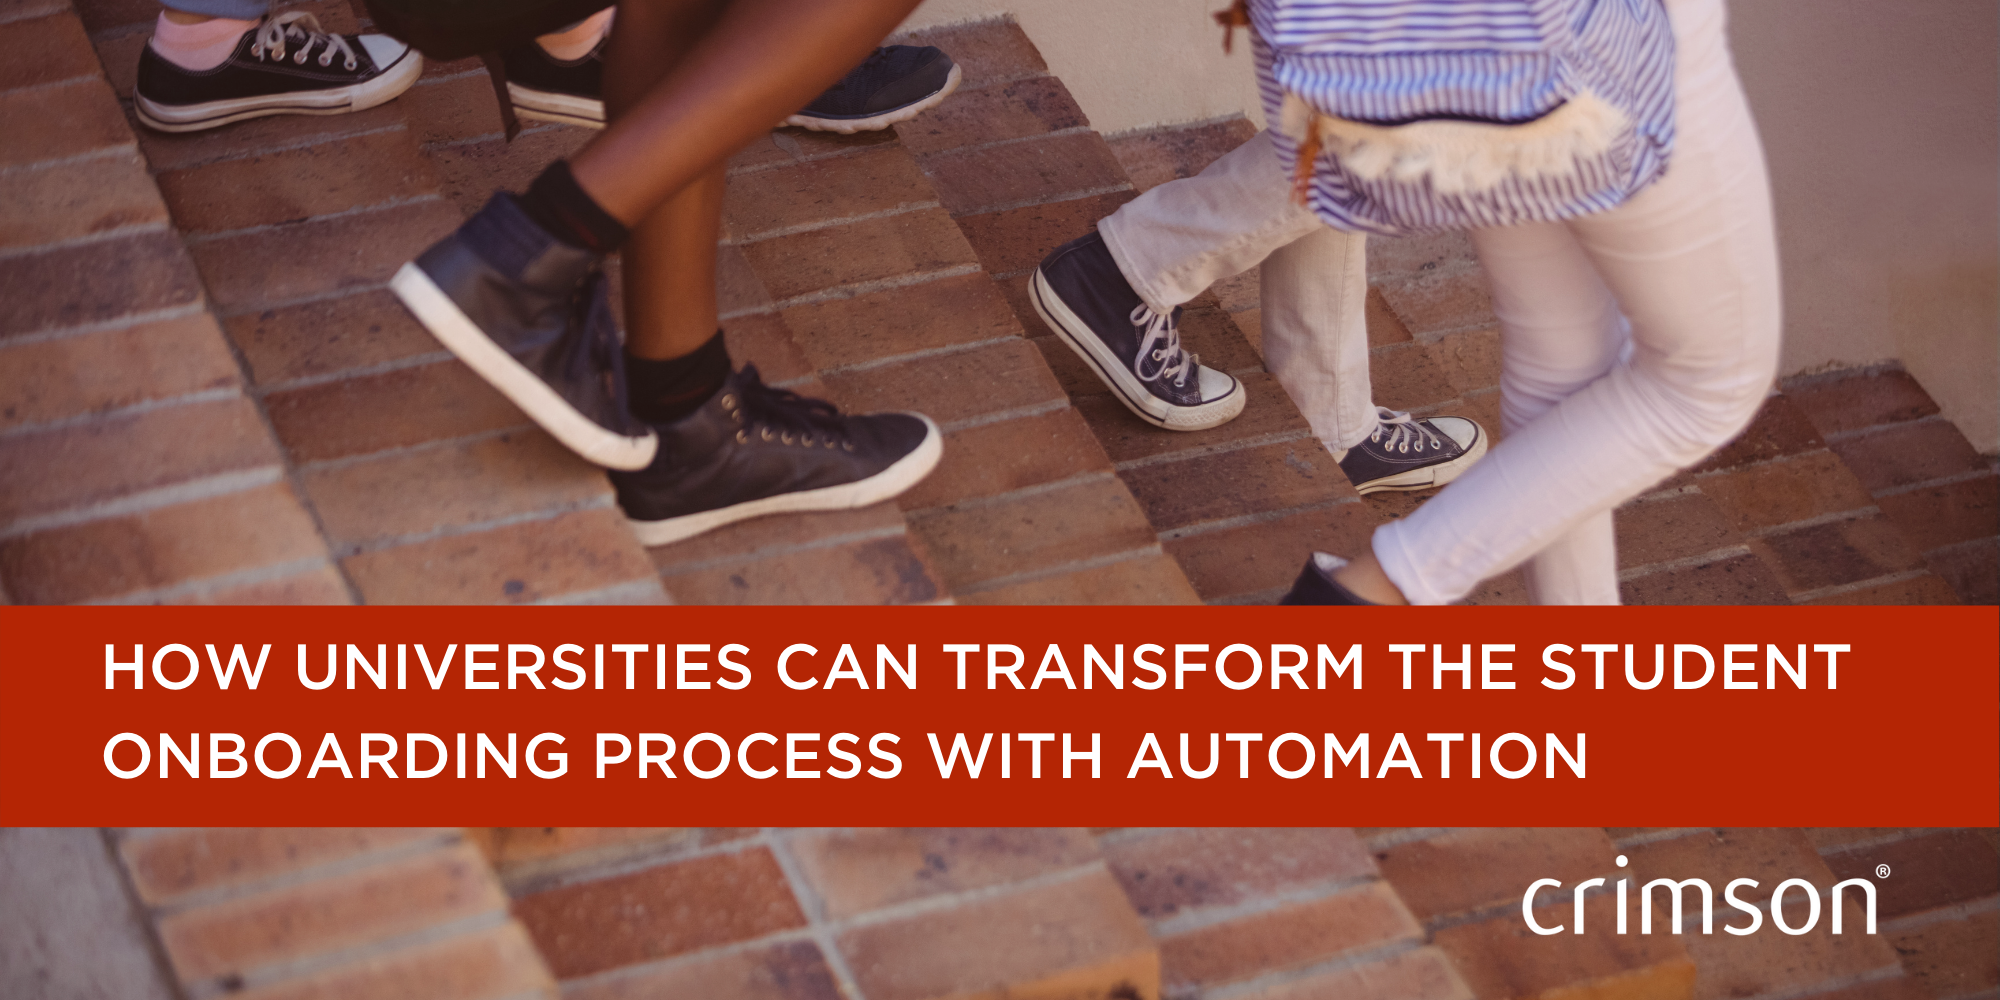 How universities can transform the student onboarding process with automation